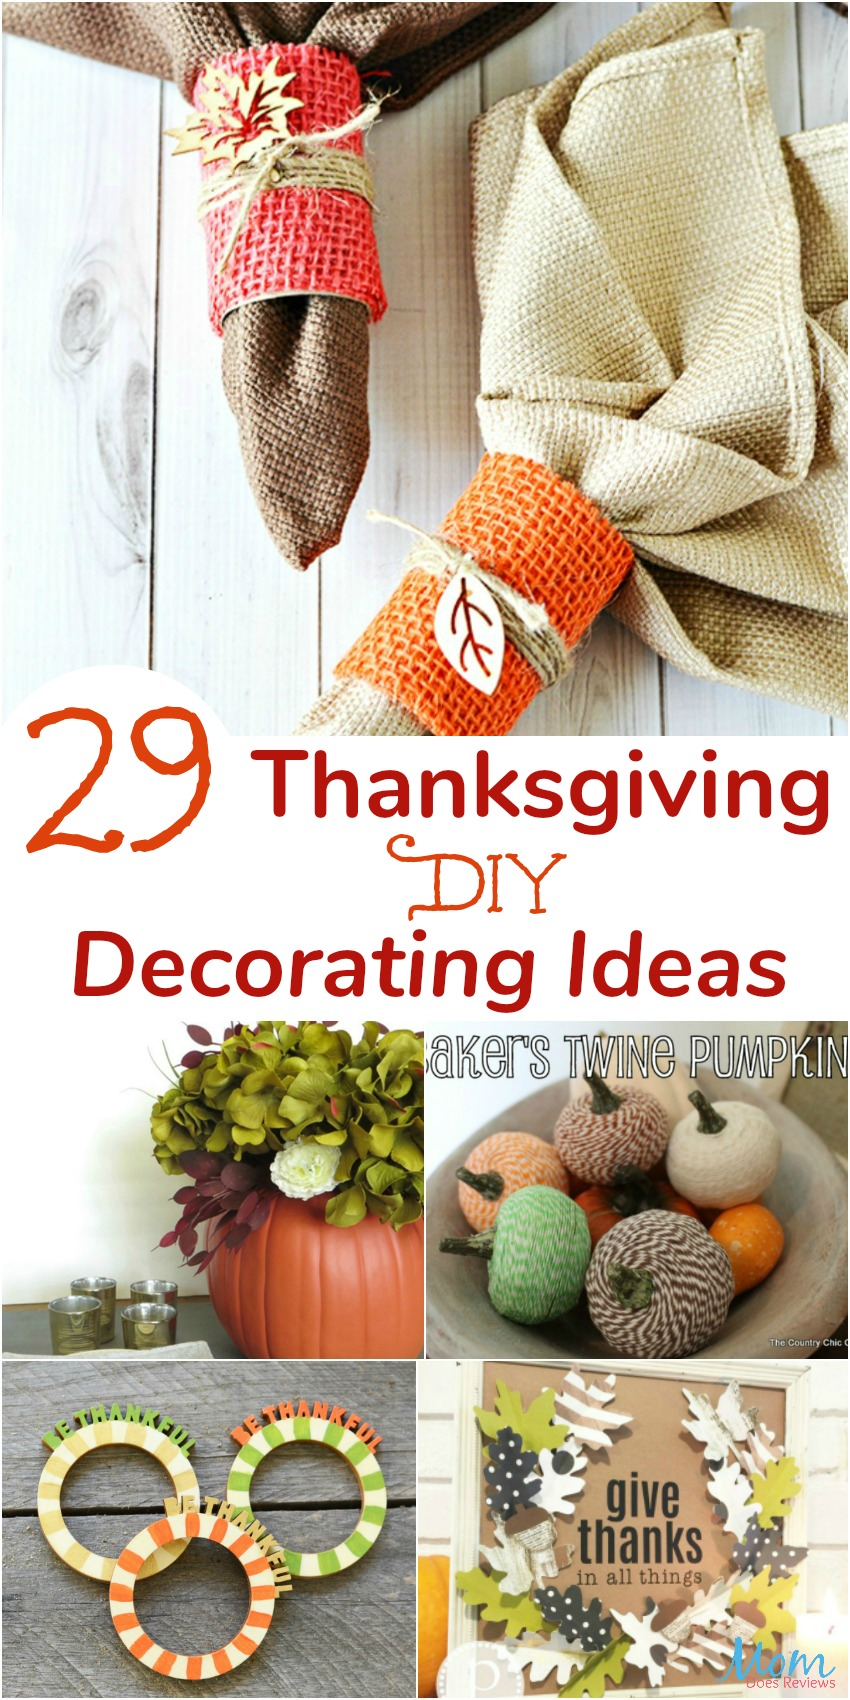 29 Thanksgiving DIY Decorating Ideas